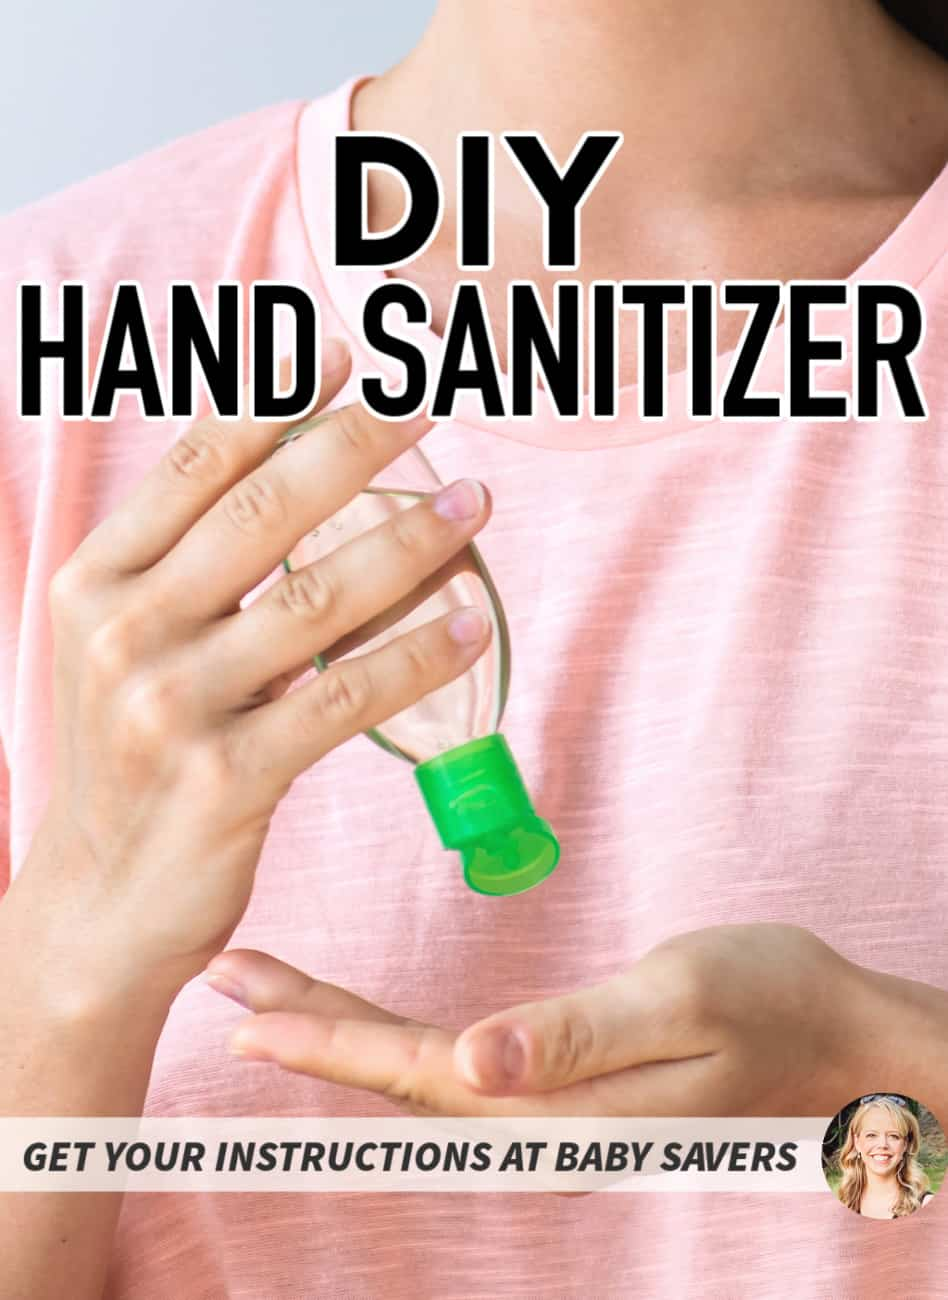 DIY HAND SANITIZER RECIPE PIN